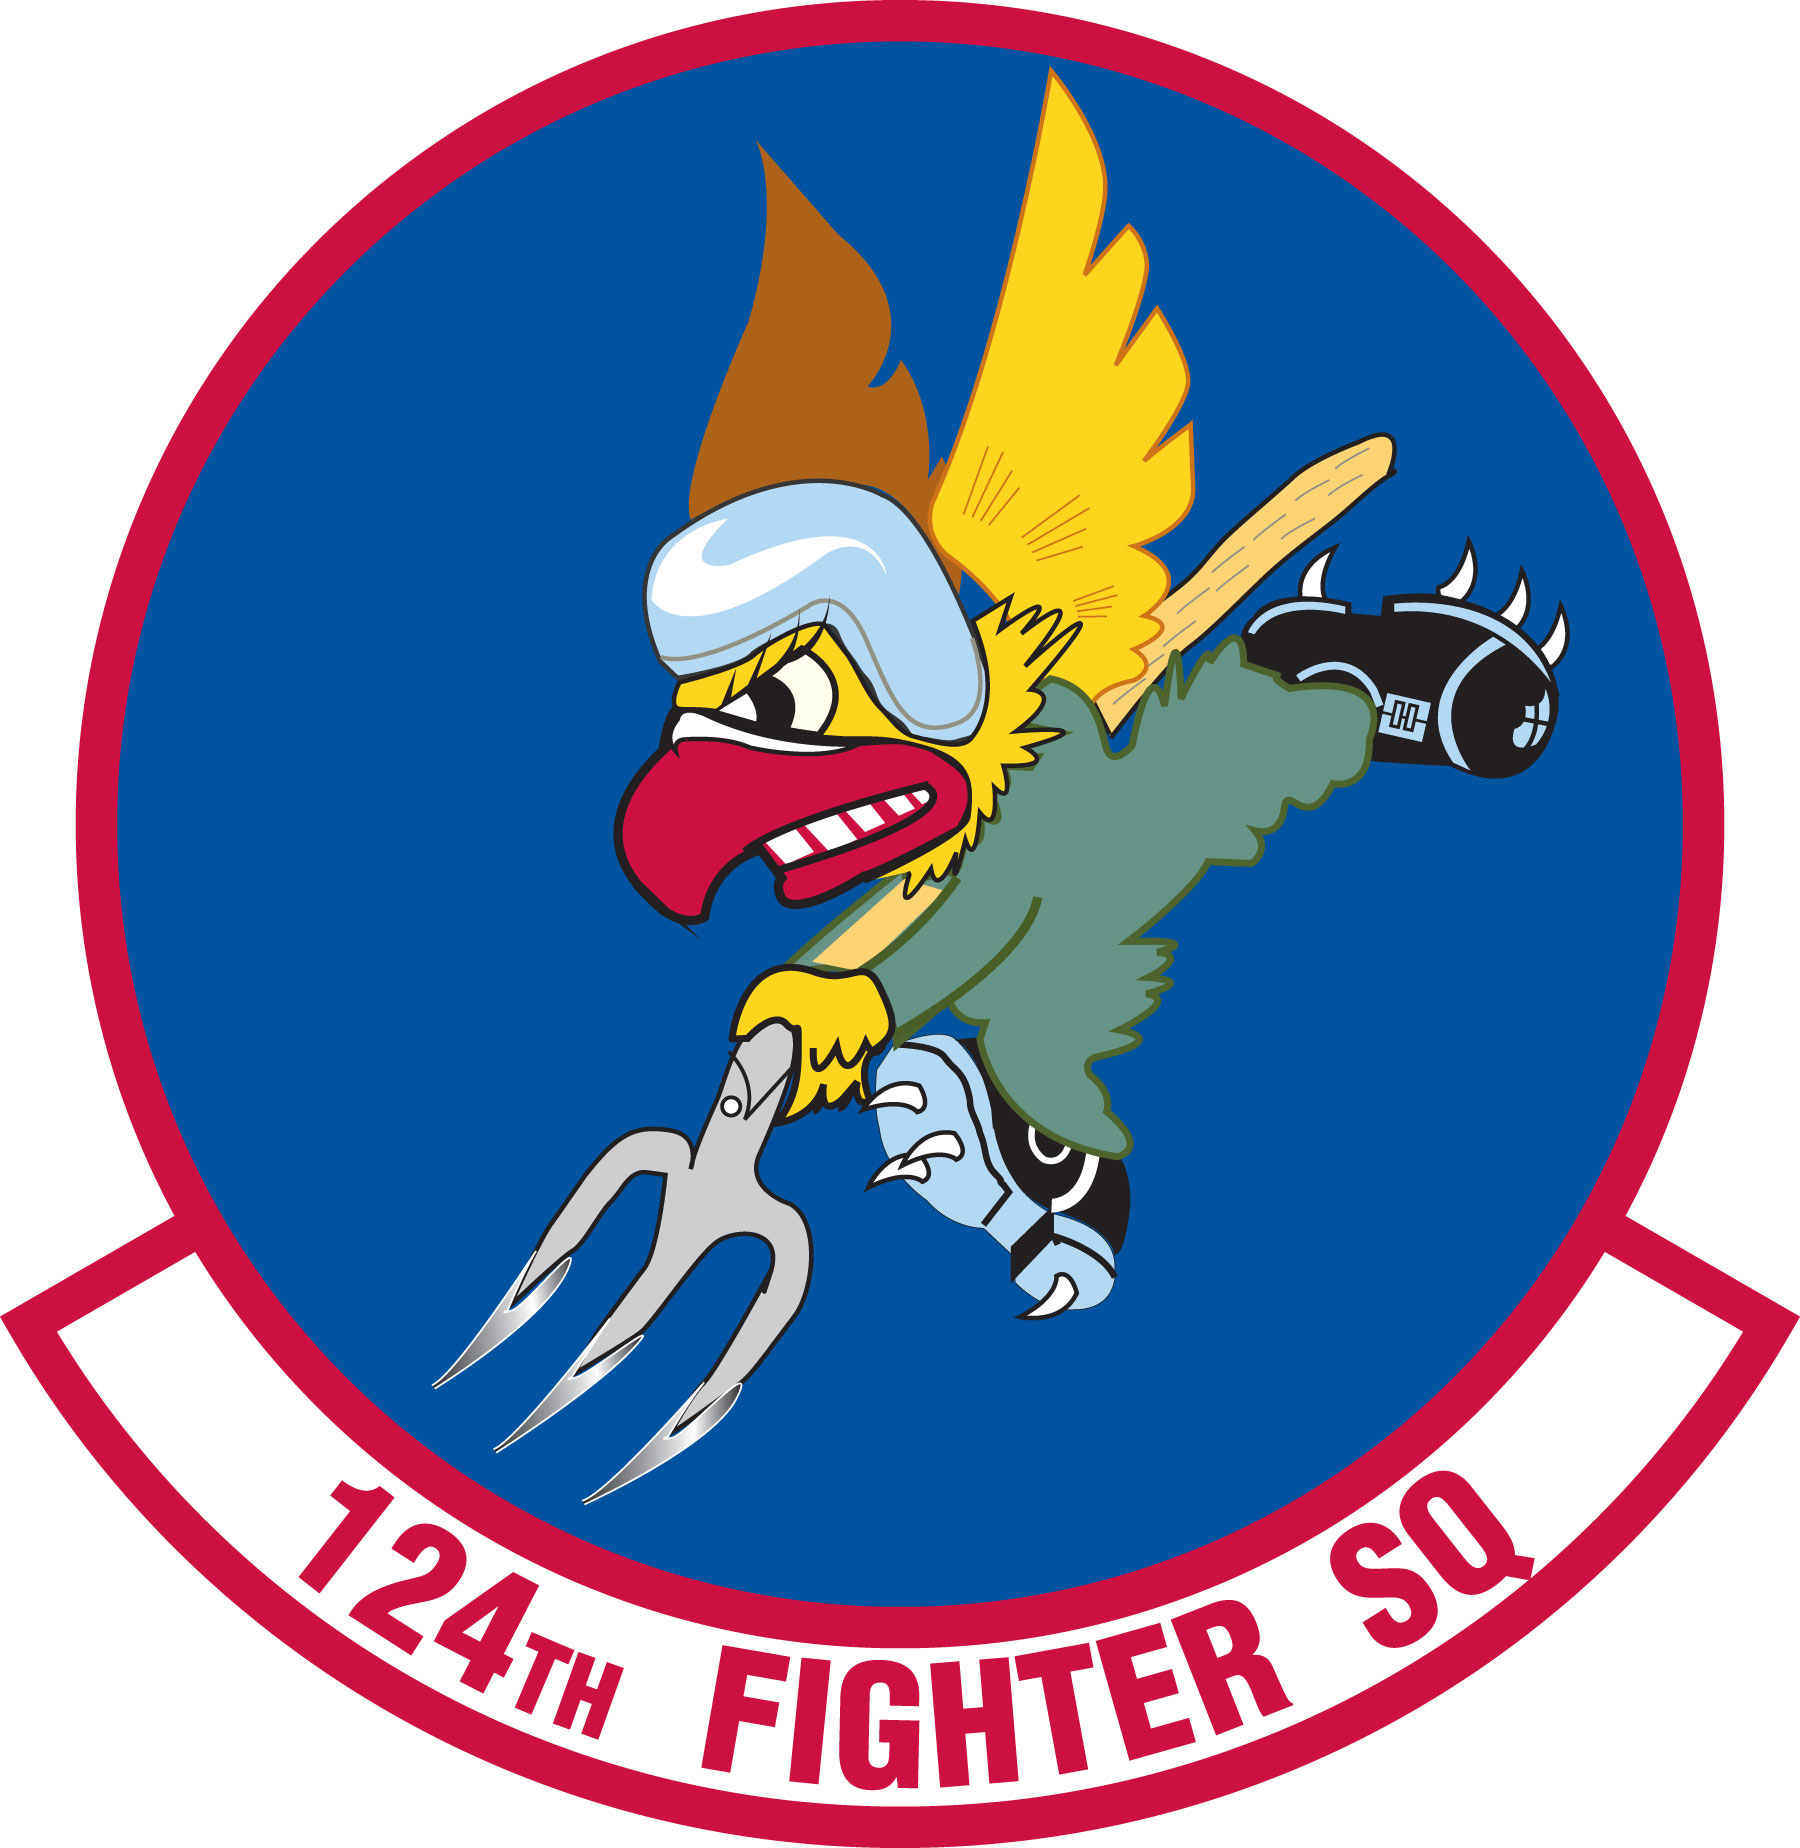 Fighter Squadron Logo 124th Fighter Squadron Emblem